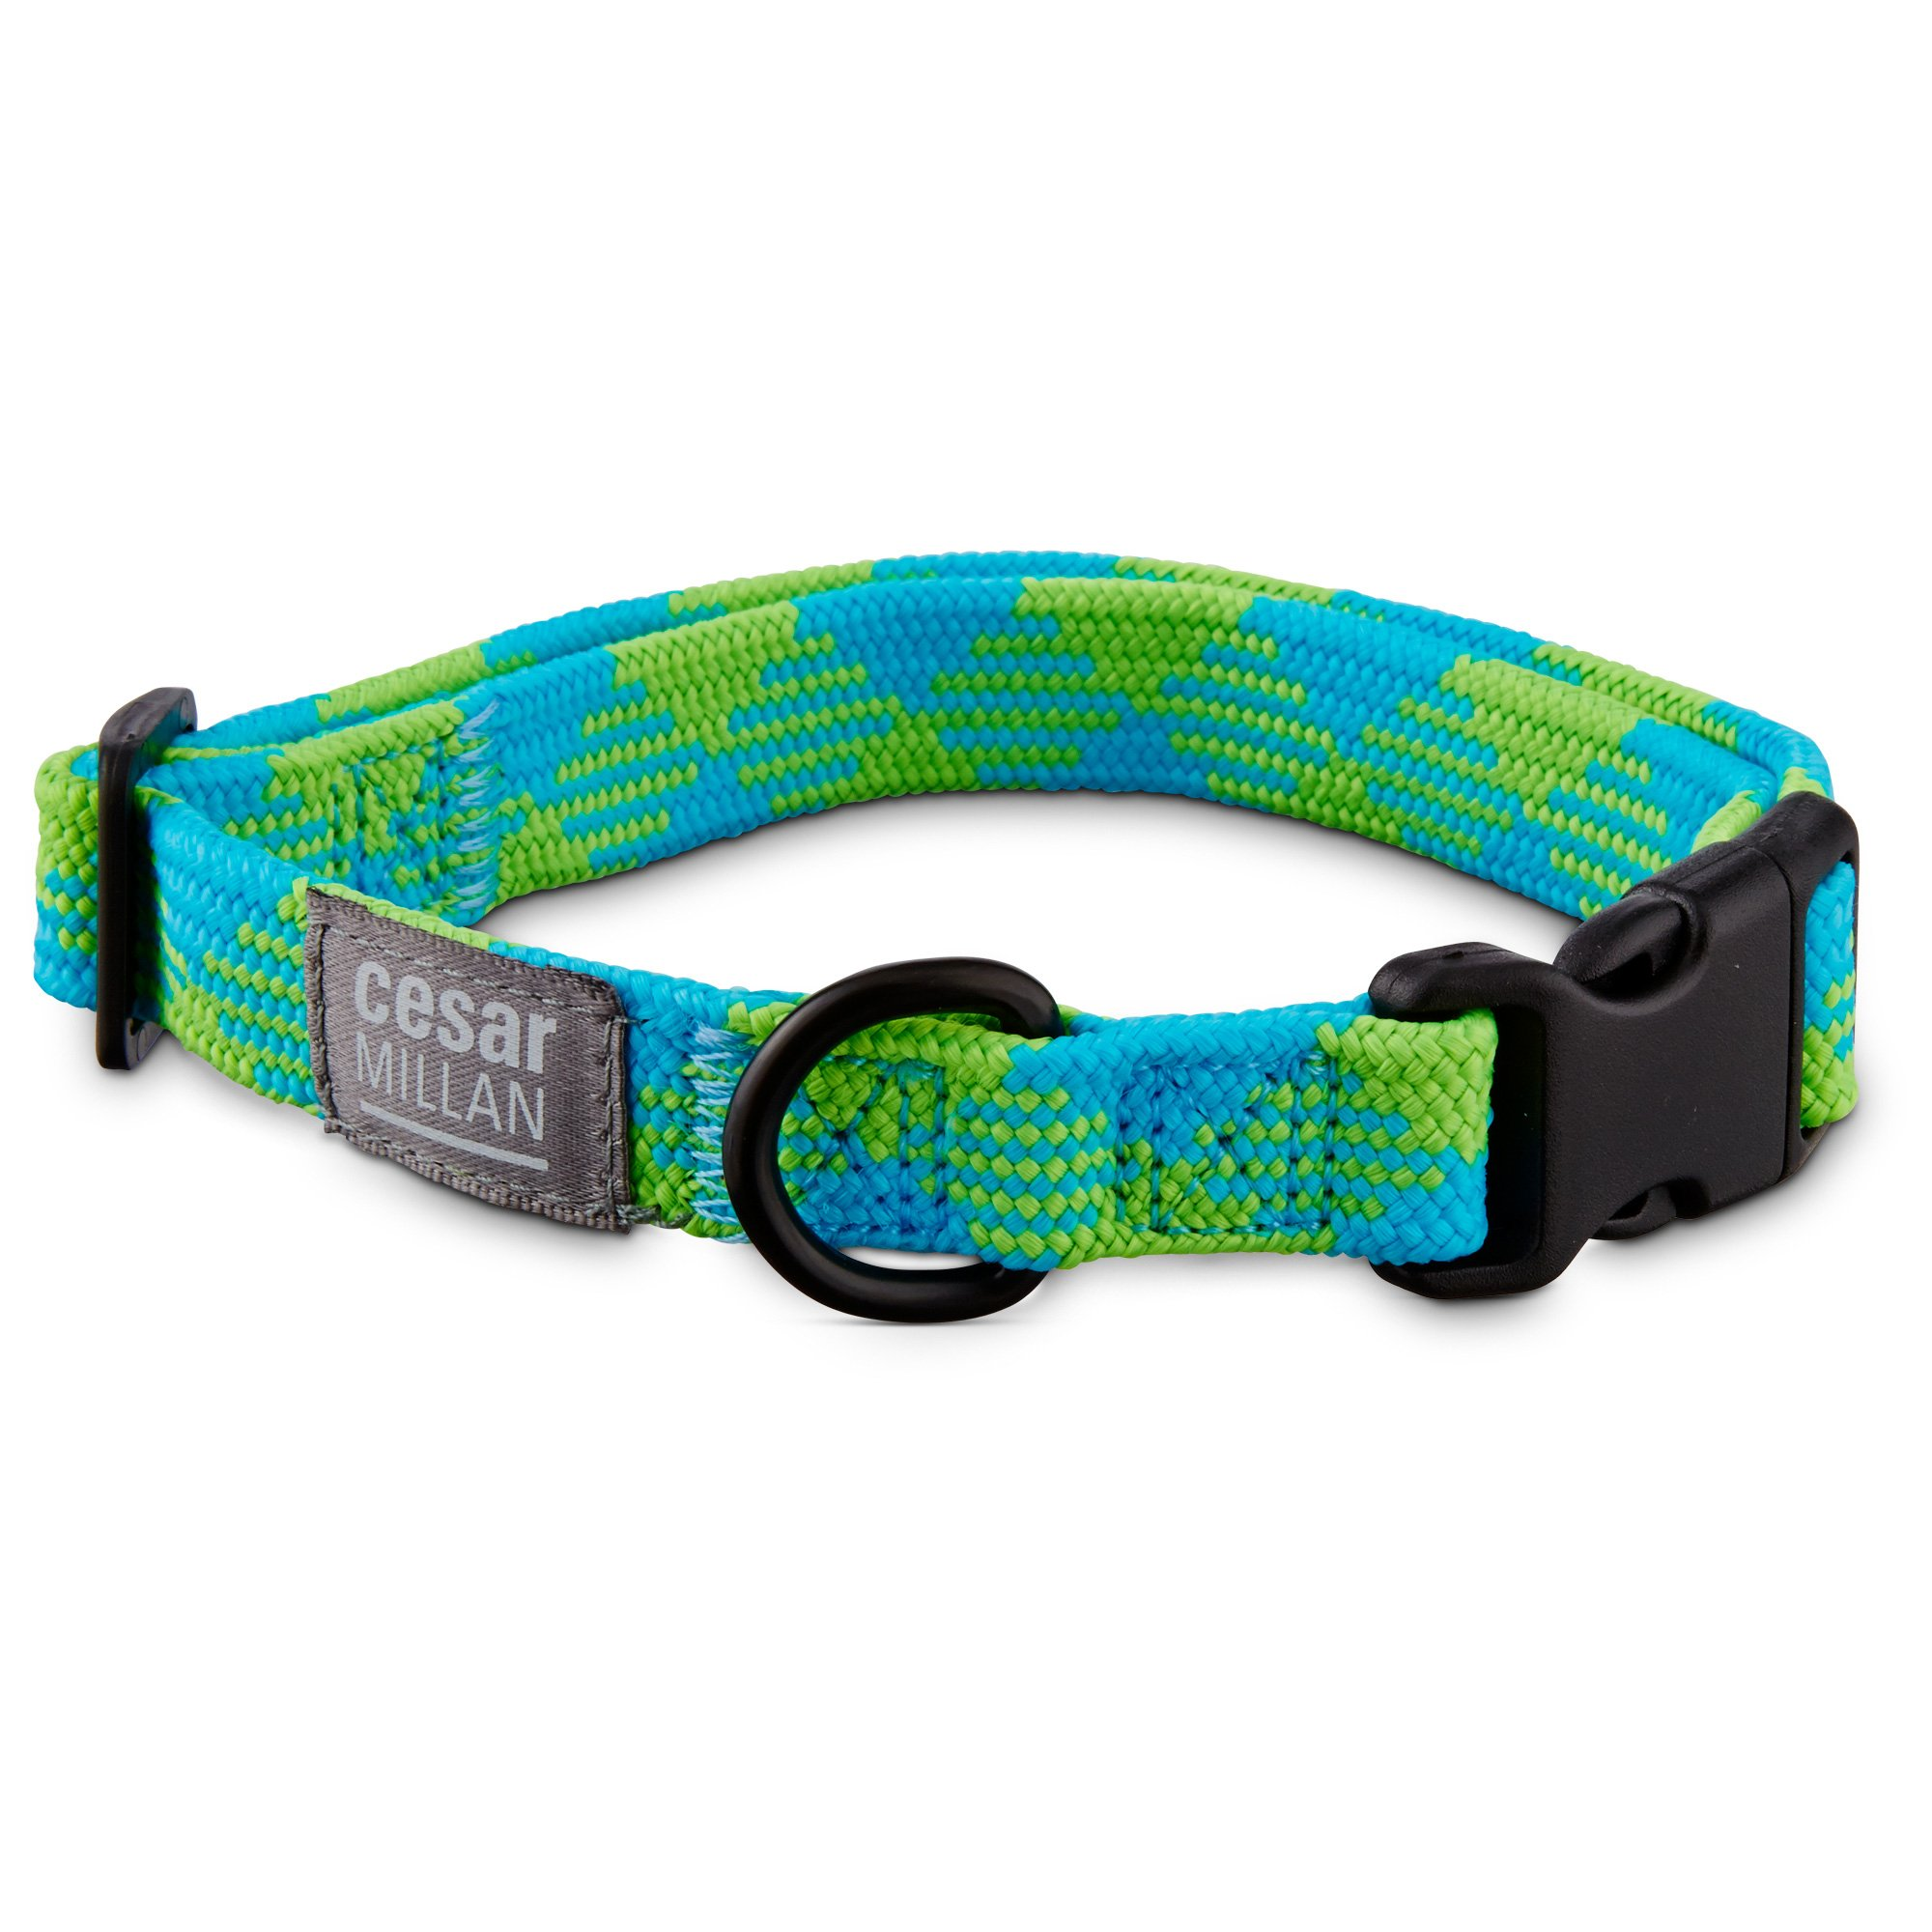 Cesar Millan Braided Brights Blue & Lime Nylon Dog Collar